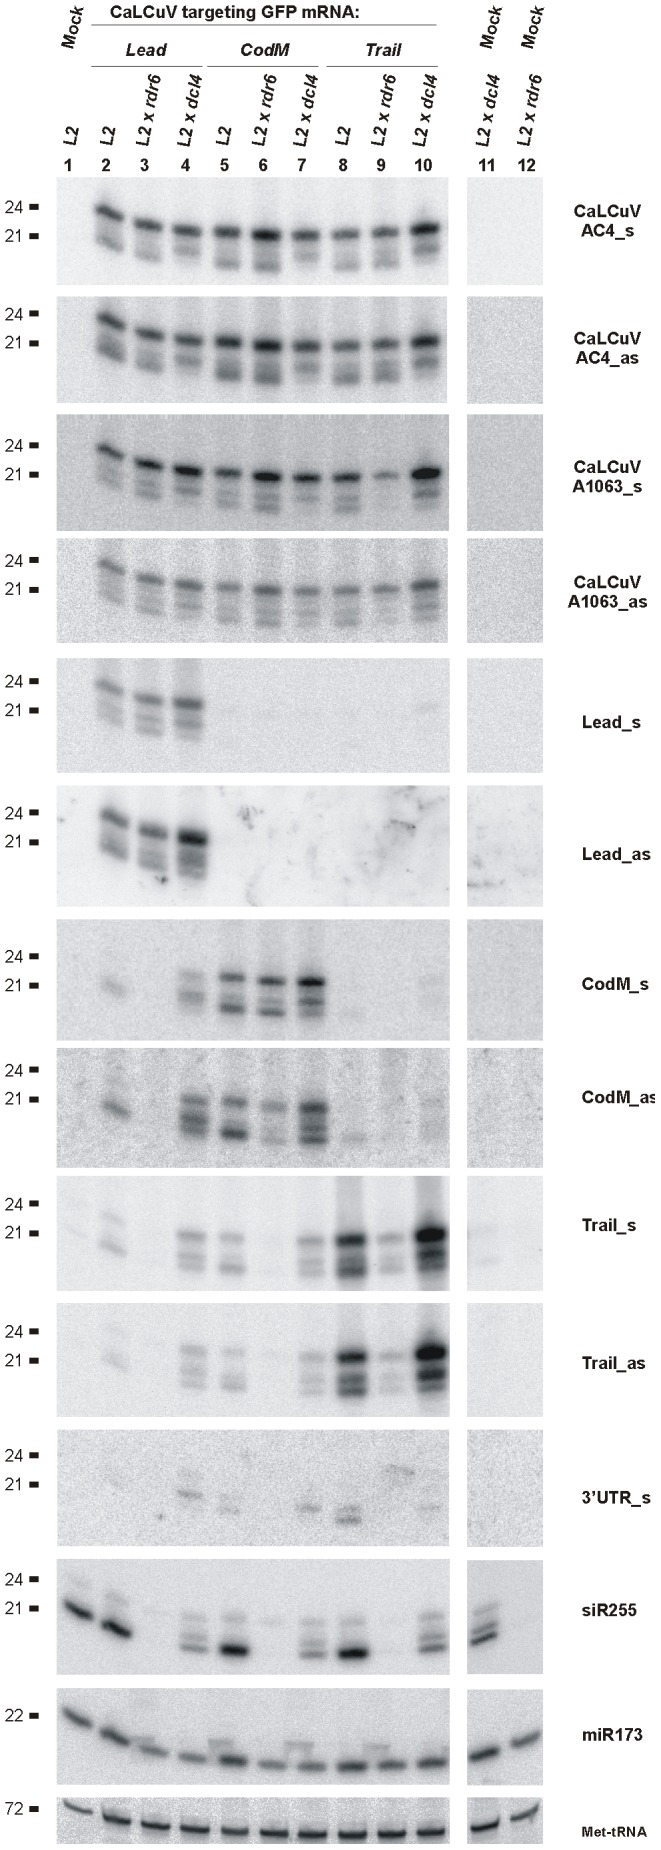 Genetic requirements for primary and secondary siRNA accumulation in L2 transgenic plants. Blot hybridization analysis of total <t>RNA</t> isolated from L2, L2 x rdr6 and L2 x dcl4 plants infected with <t>CaLCuV::GFP</t> viruses Lead, CodM and Trail . The blot was successively hybridized with short DNA probes specific for CaLCuV genes AC4 (AC4_s and AC4_as) and AV1 (A1063_s and A1063_as), 35S::GFP transgene sequences inserted in the CaLCuV::GFP viruses ( Lead, CodM, Trail ), GFP mRNA 3′UTR non-target sequence (3′UTR_s) and Arabidopsis miR173 and Met-tRNA (the latter two serve as loading control).